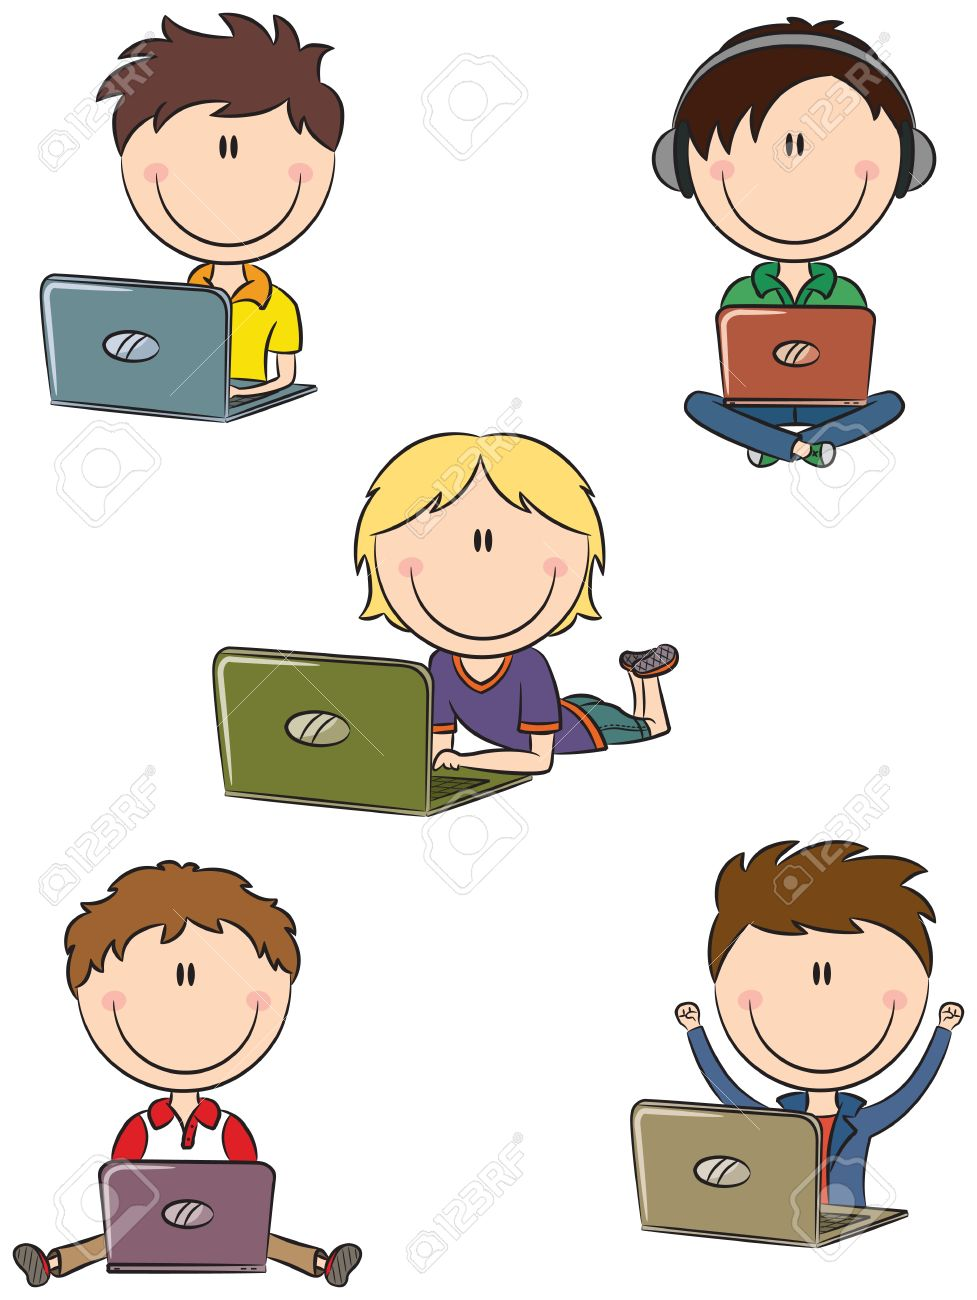 Cute cheerful boys with laptops sitting in different poses - 14375190